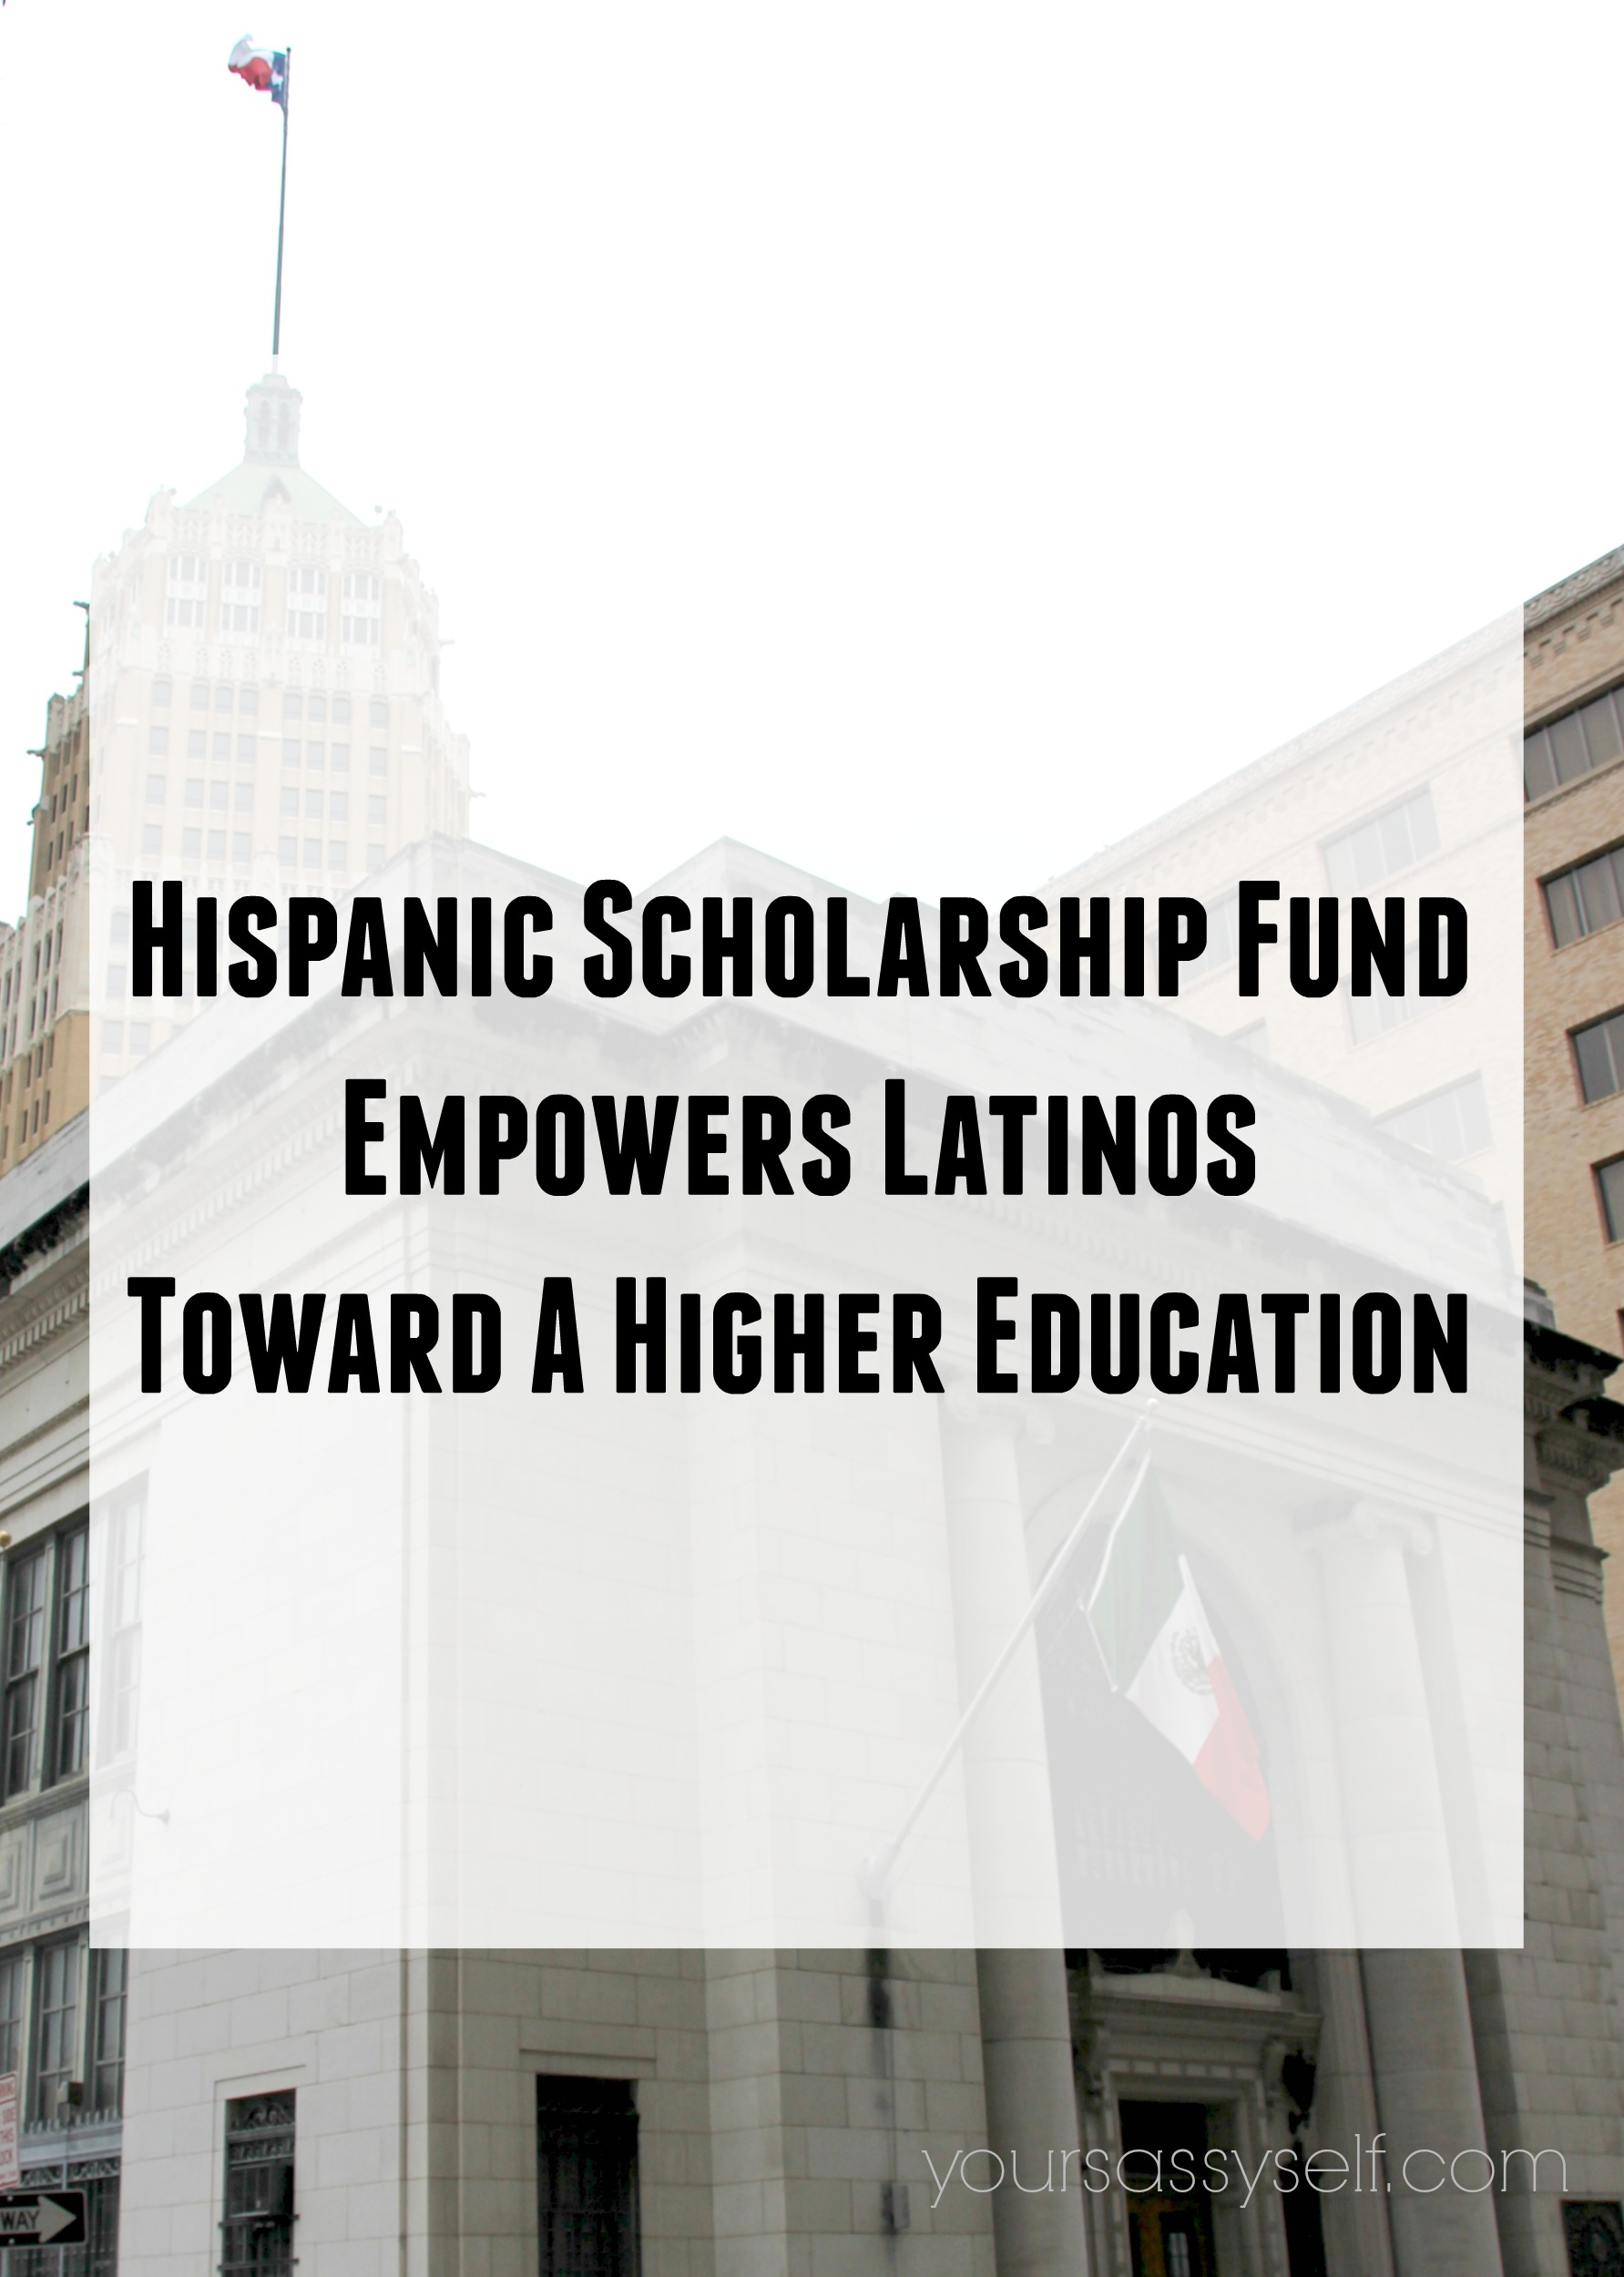 hispanics and higher education Scholarships and grants that specifically fund hispanic higher education provide a leg up for minorities seeking an  university enrollment among hispanics.